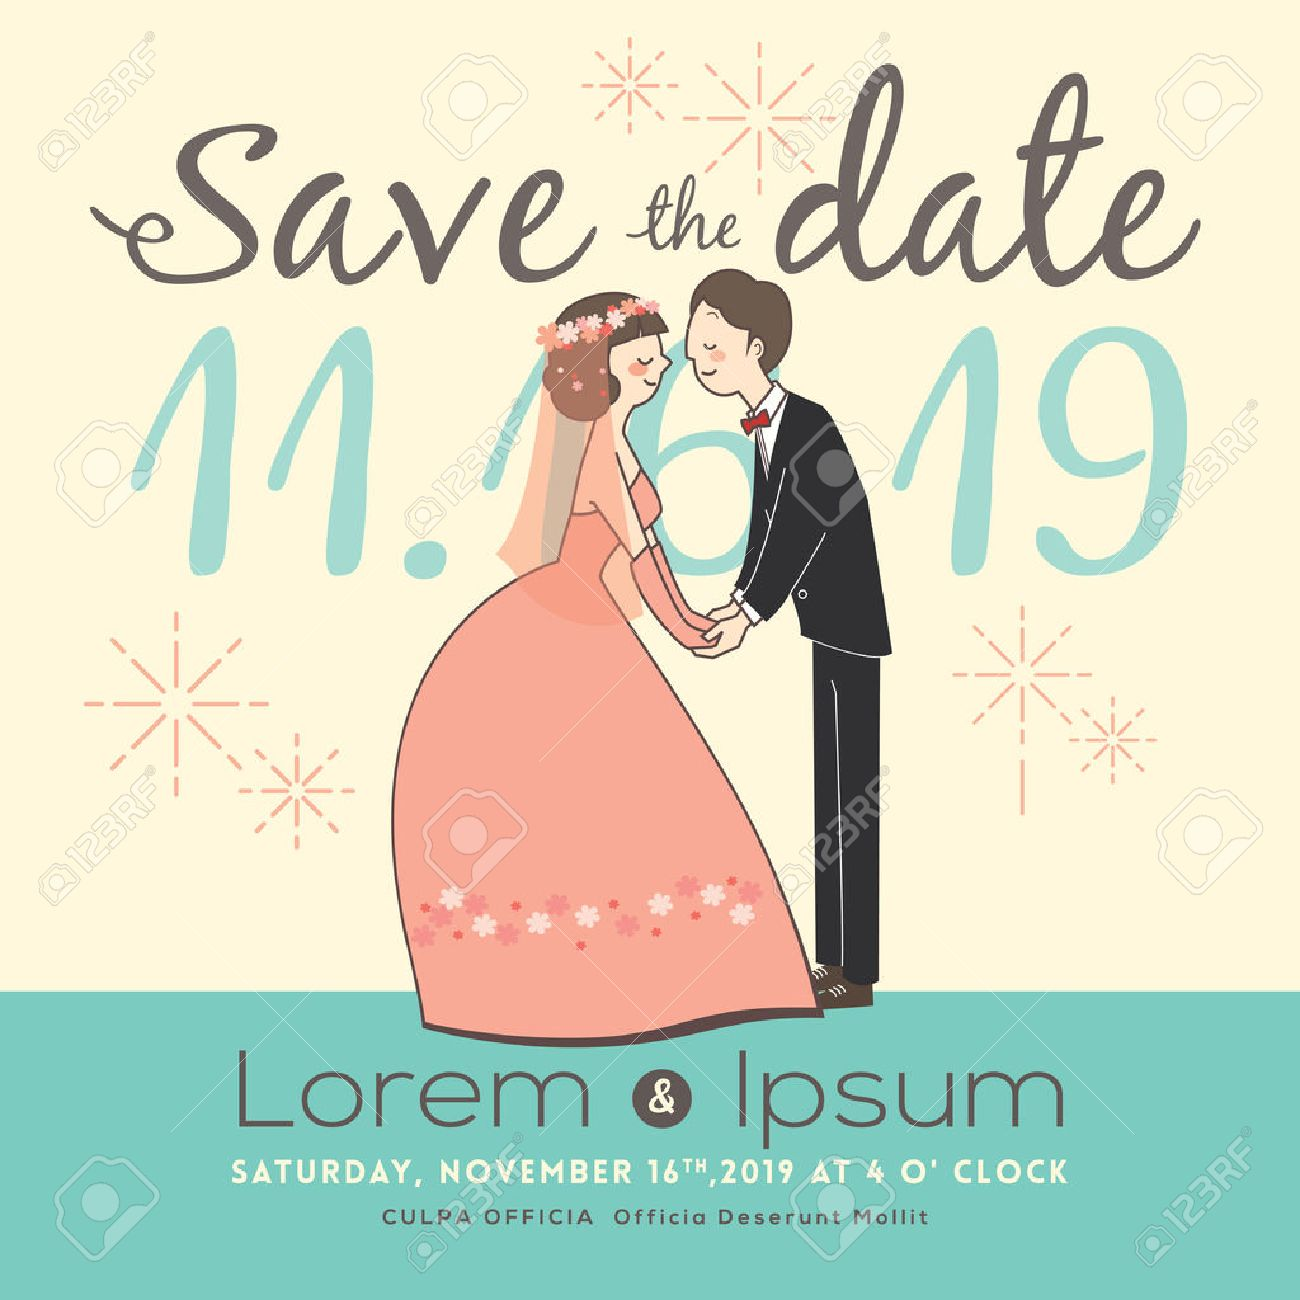 Cute Groom And Bride Cartoon Save The Date Wedding Invitation – Save the Date Wedding Invite